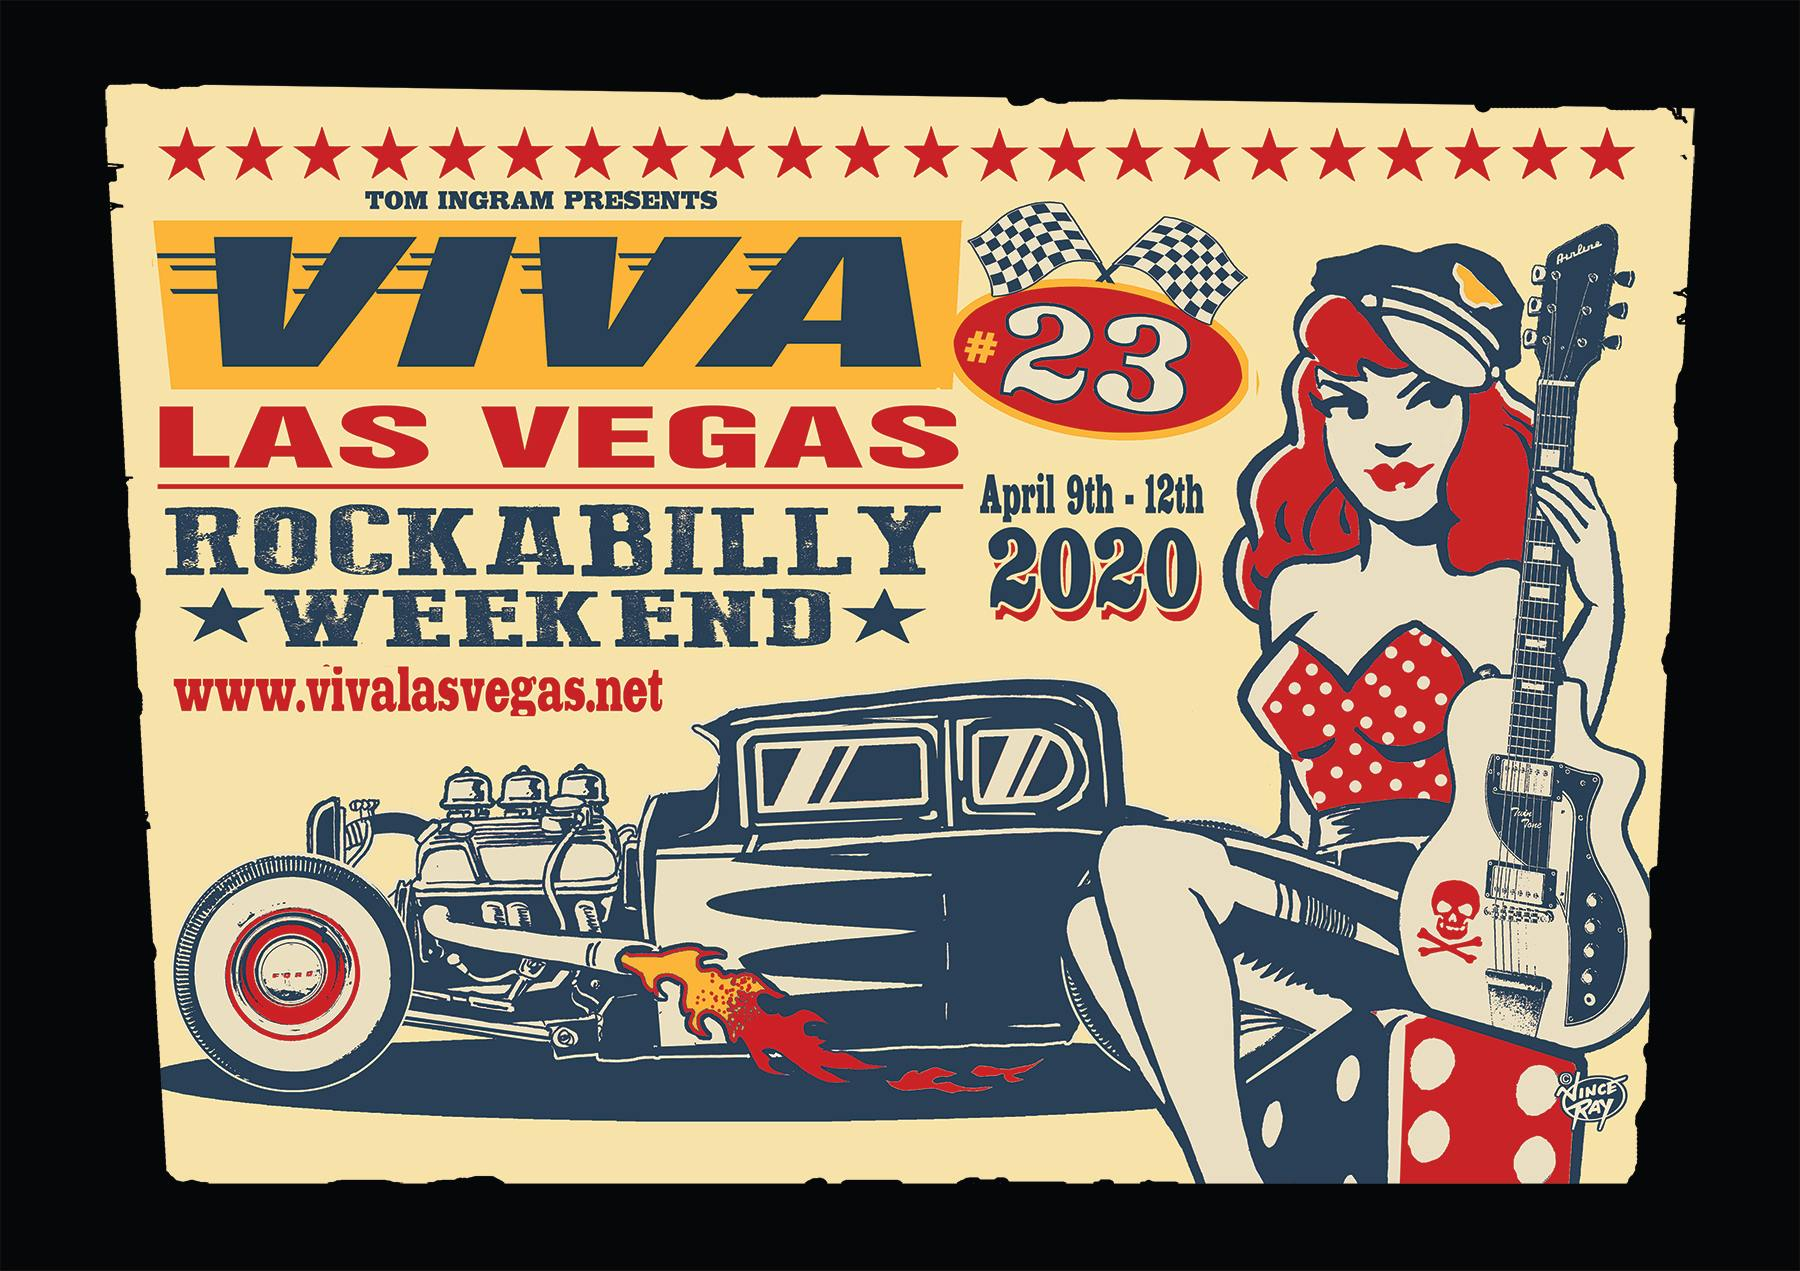 viva las vegas rockabilly weekend 2020